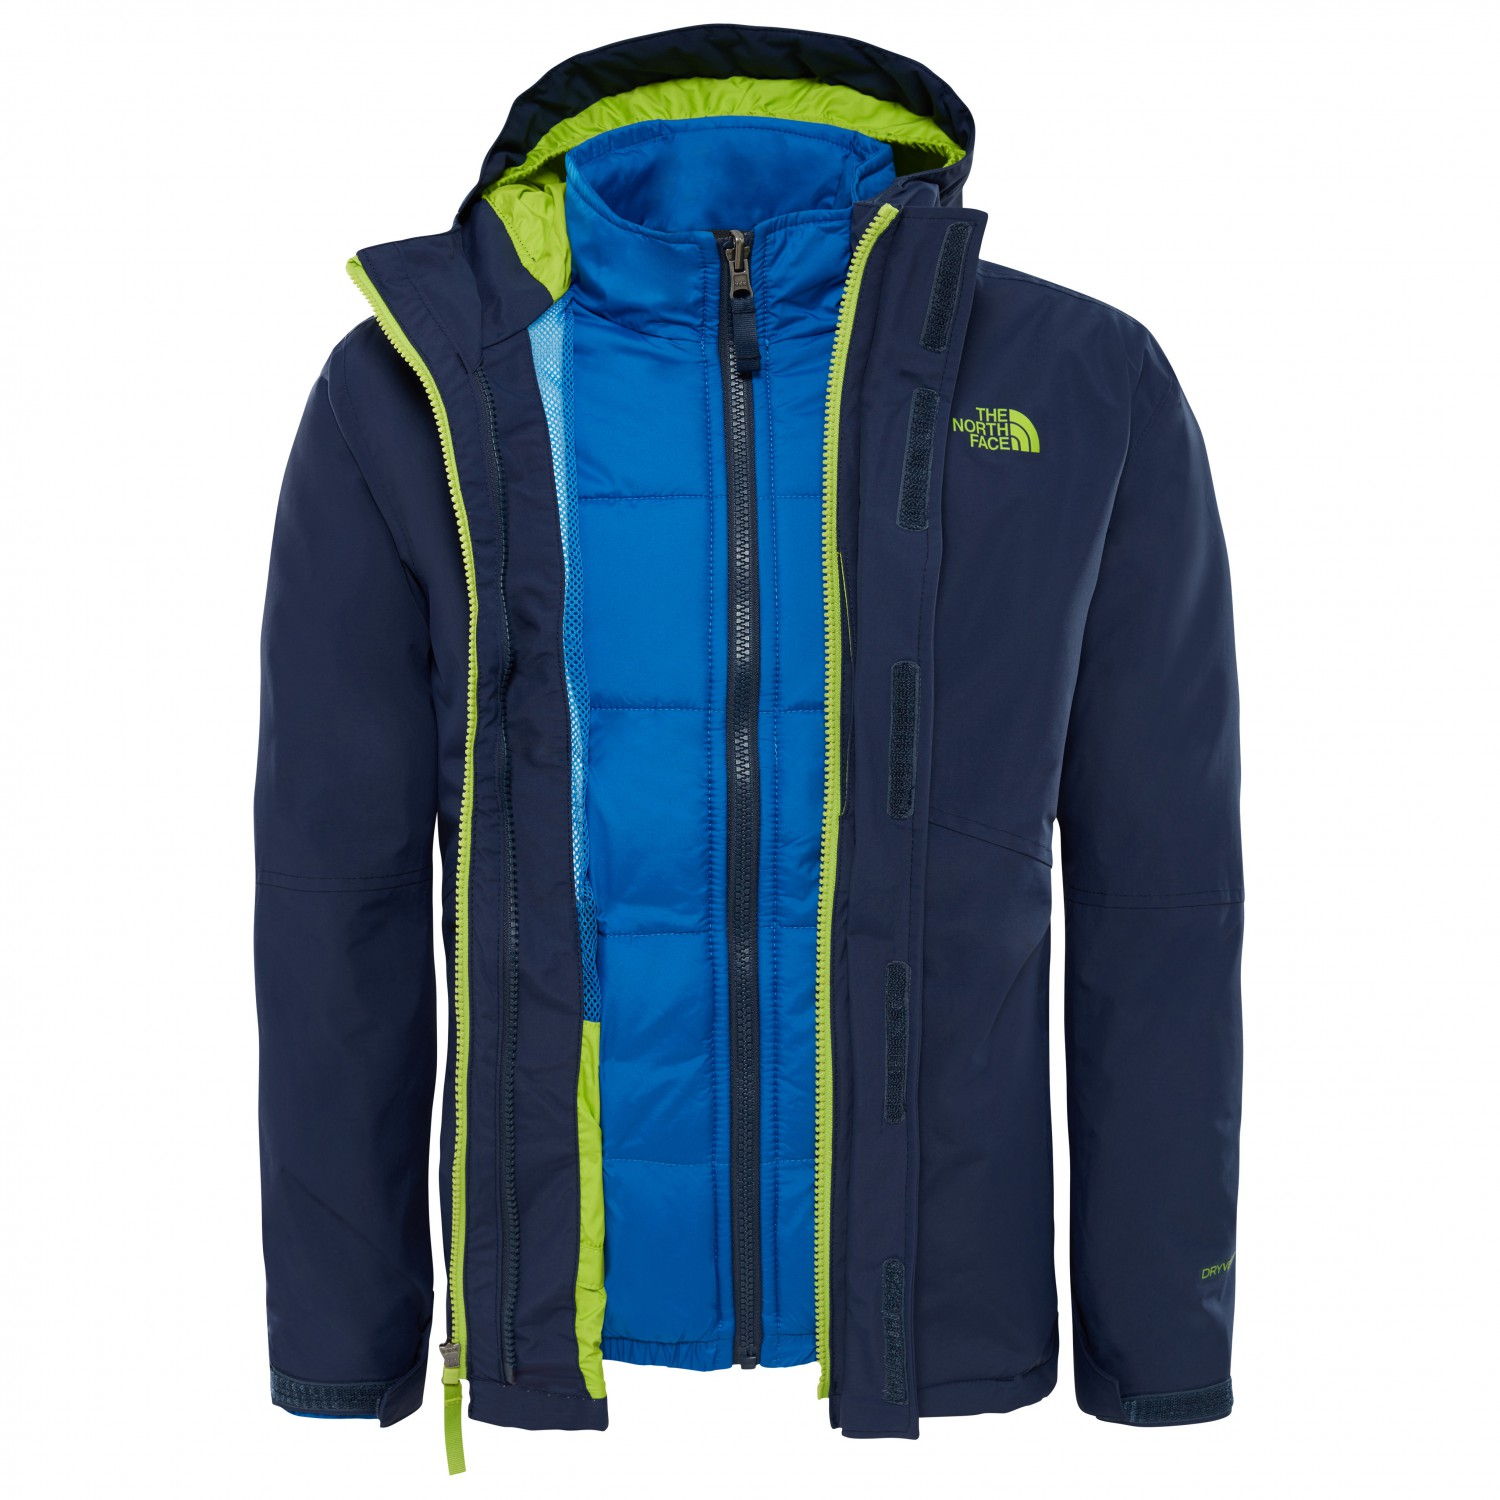 0e02214bd The North Face Boundary Triclimate - 3-In-1 Jacket Boys